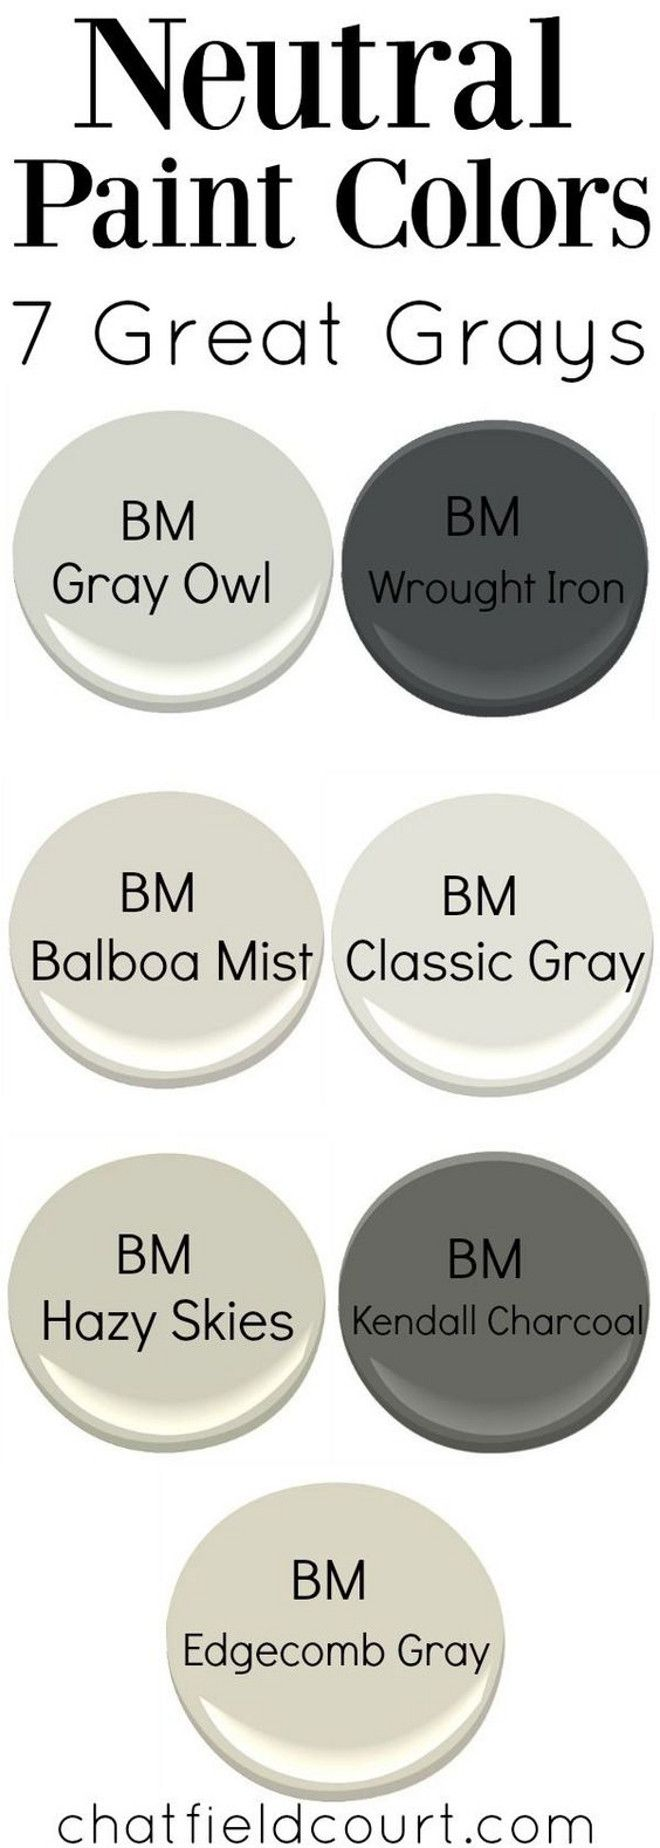 7 great gray paint colorsbenjamin moore. | home bunch